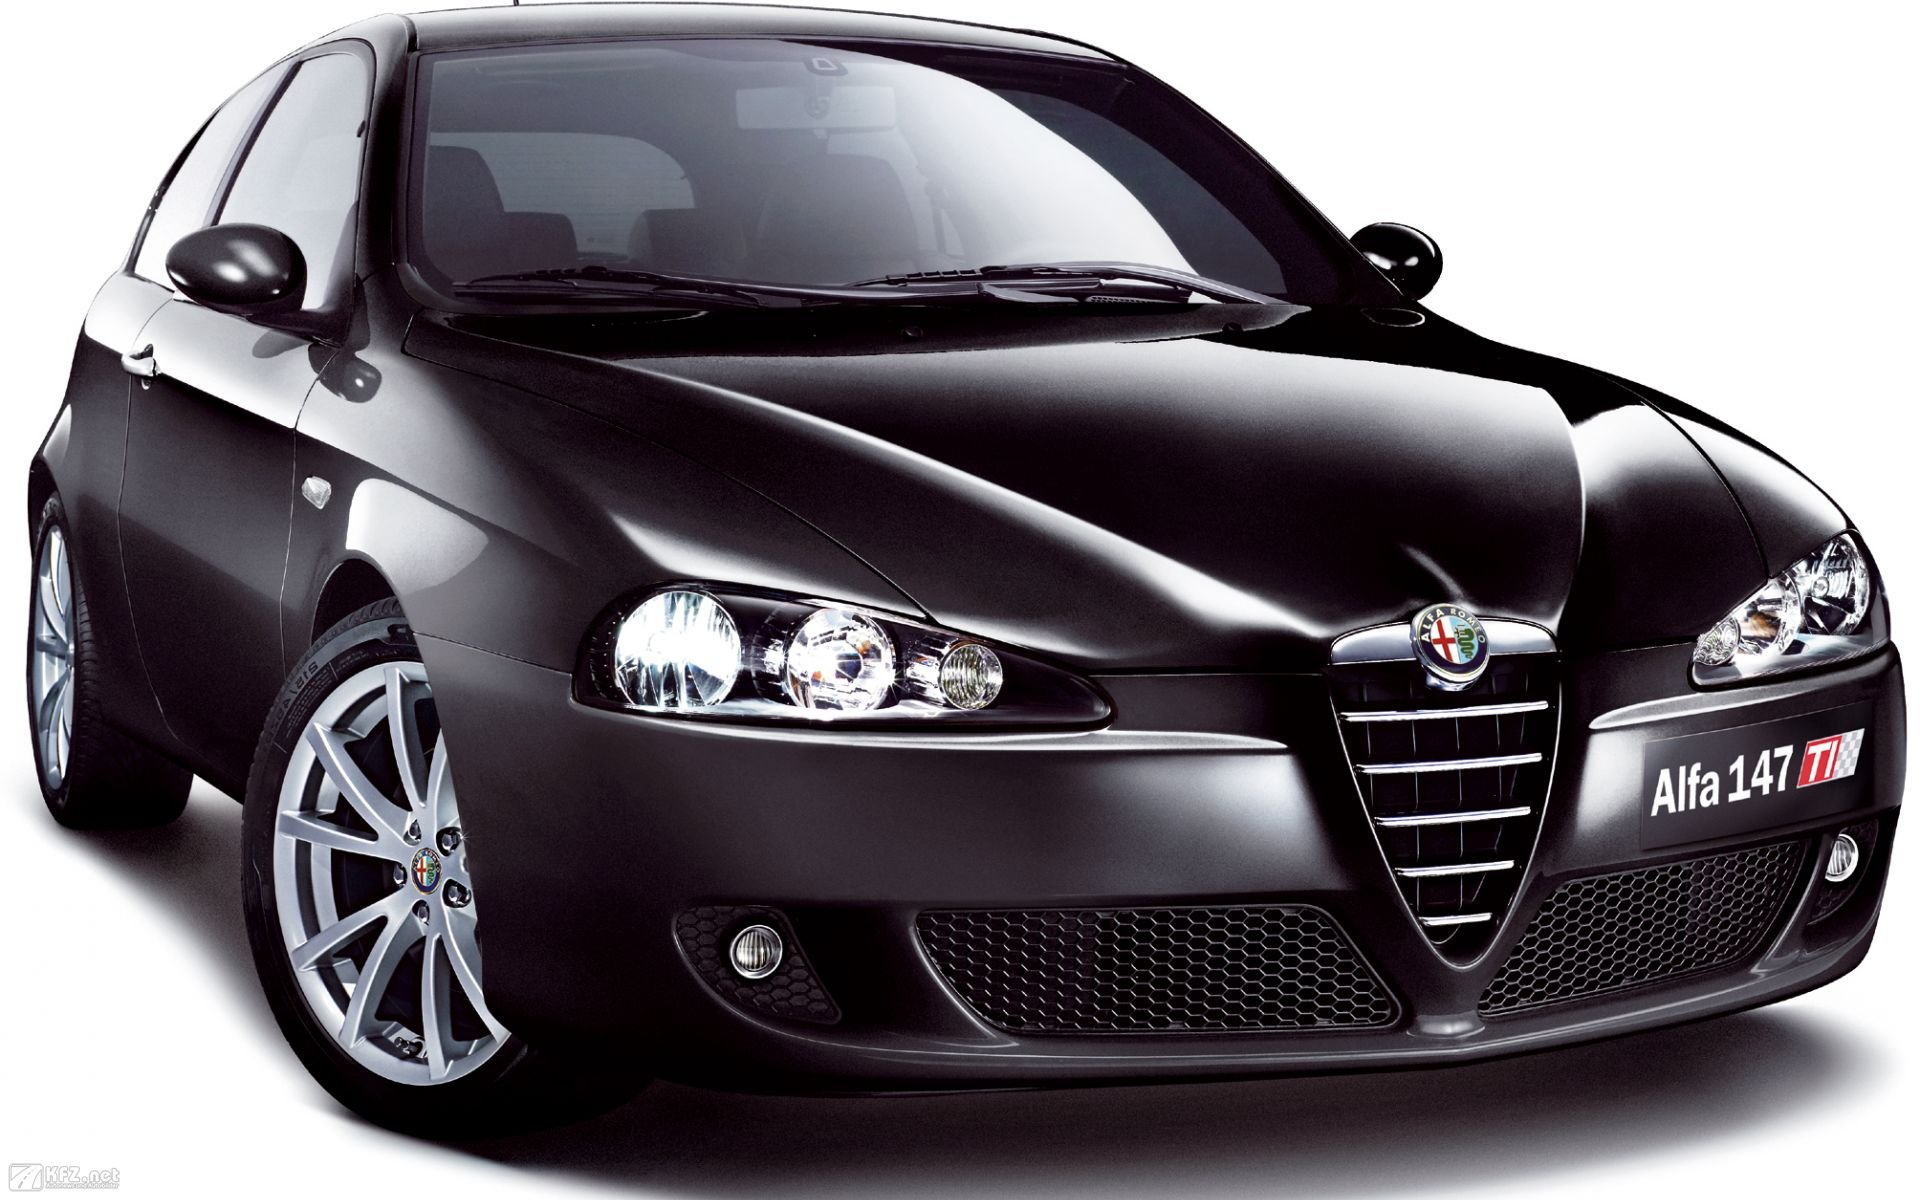 1920x1200 - Alfa Romeo 147 Wallpapers 34